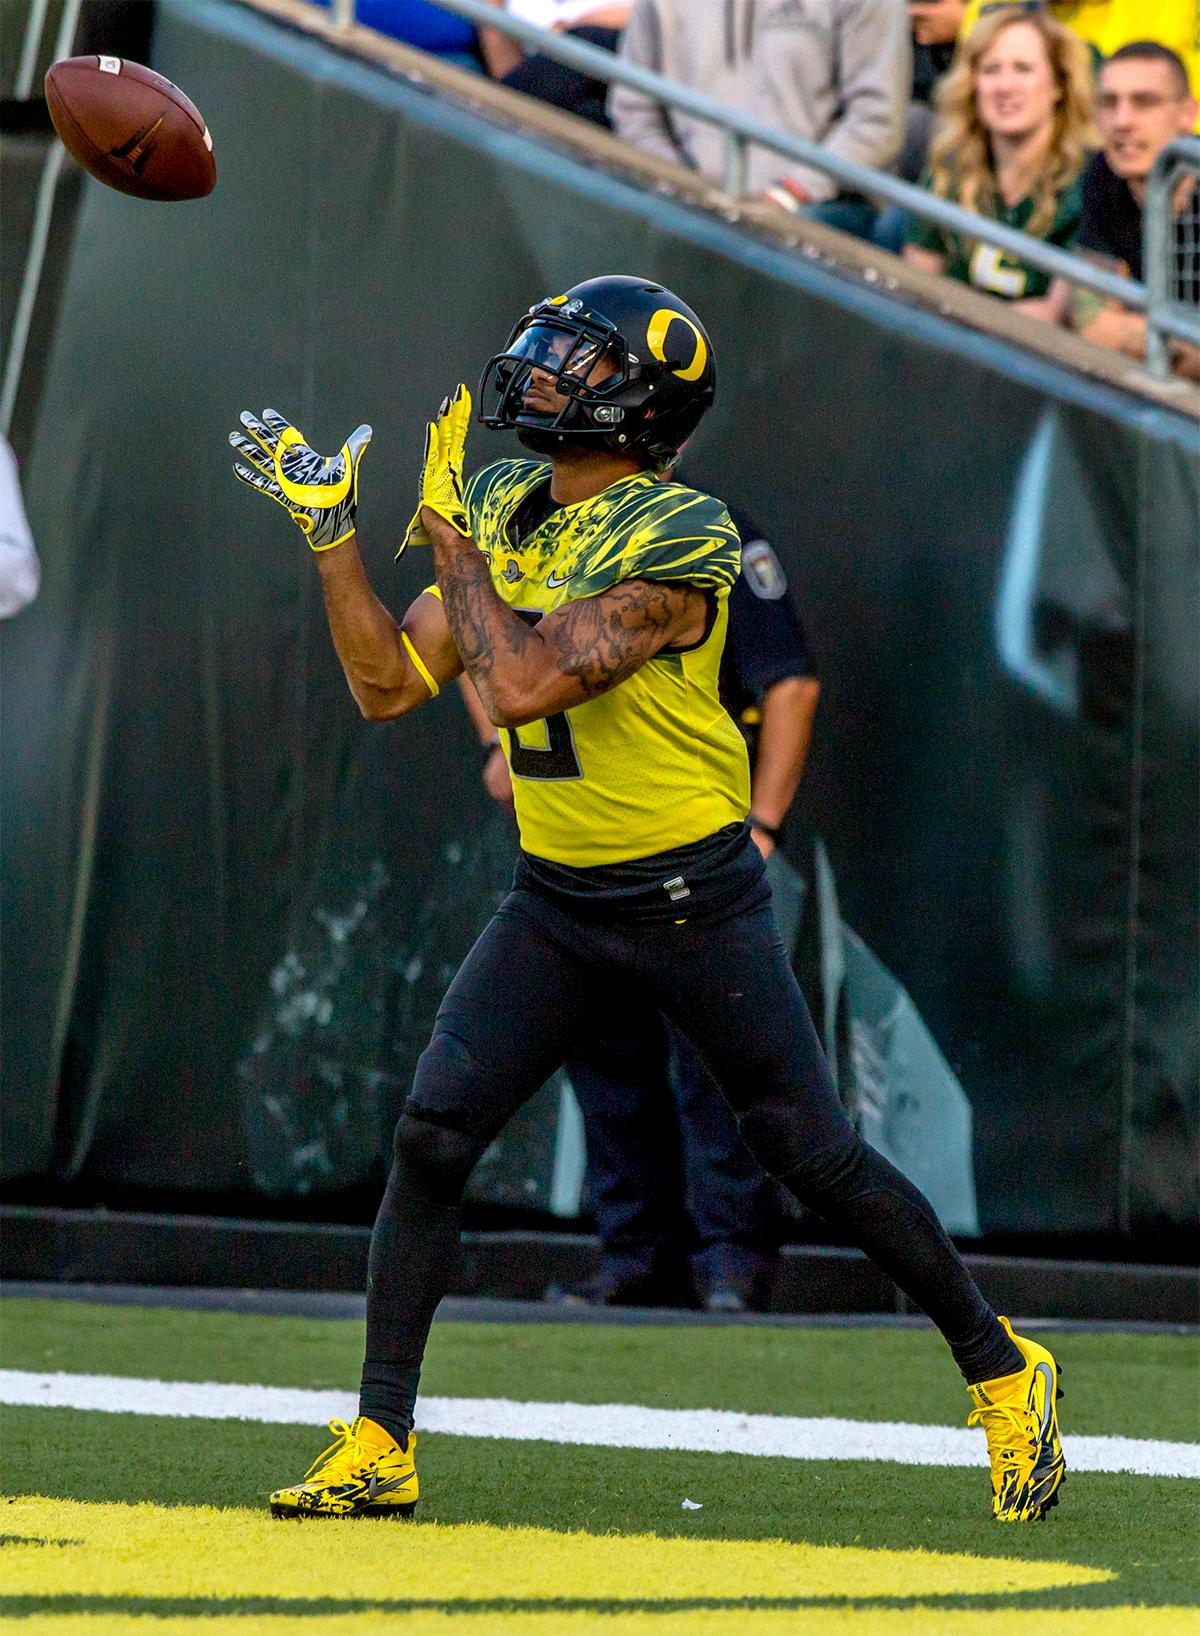 The Duck's Charles Nelson (#6) catches the kickoff. The Oregon Ducks broke their losing streak by defeating the ASU Sun Devils on Saturday 54-35. Photo by August Frank, Oregon News Lab